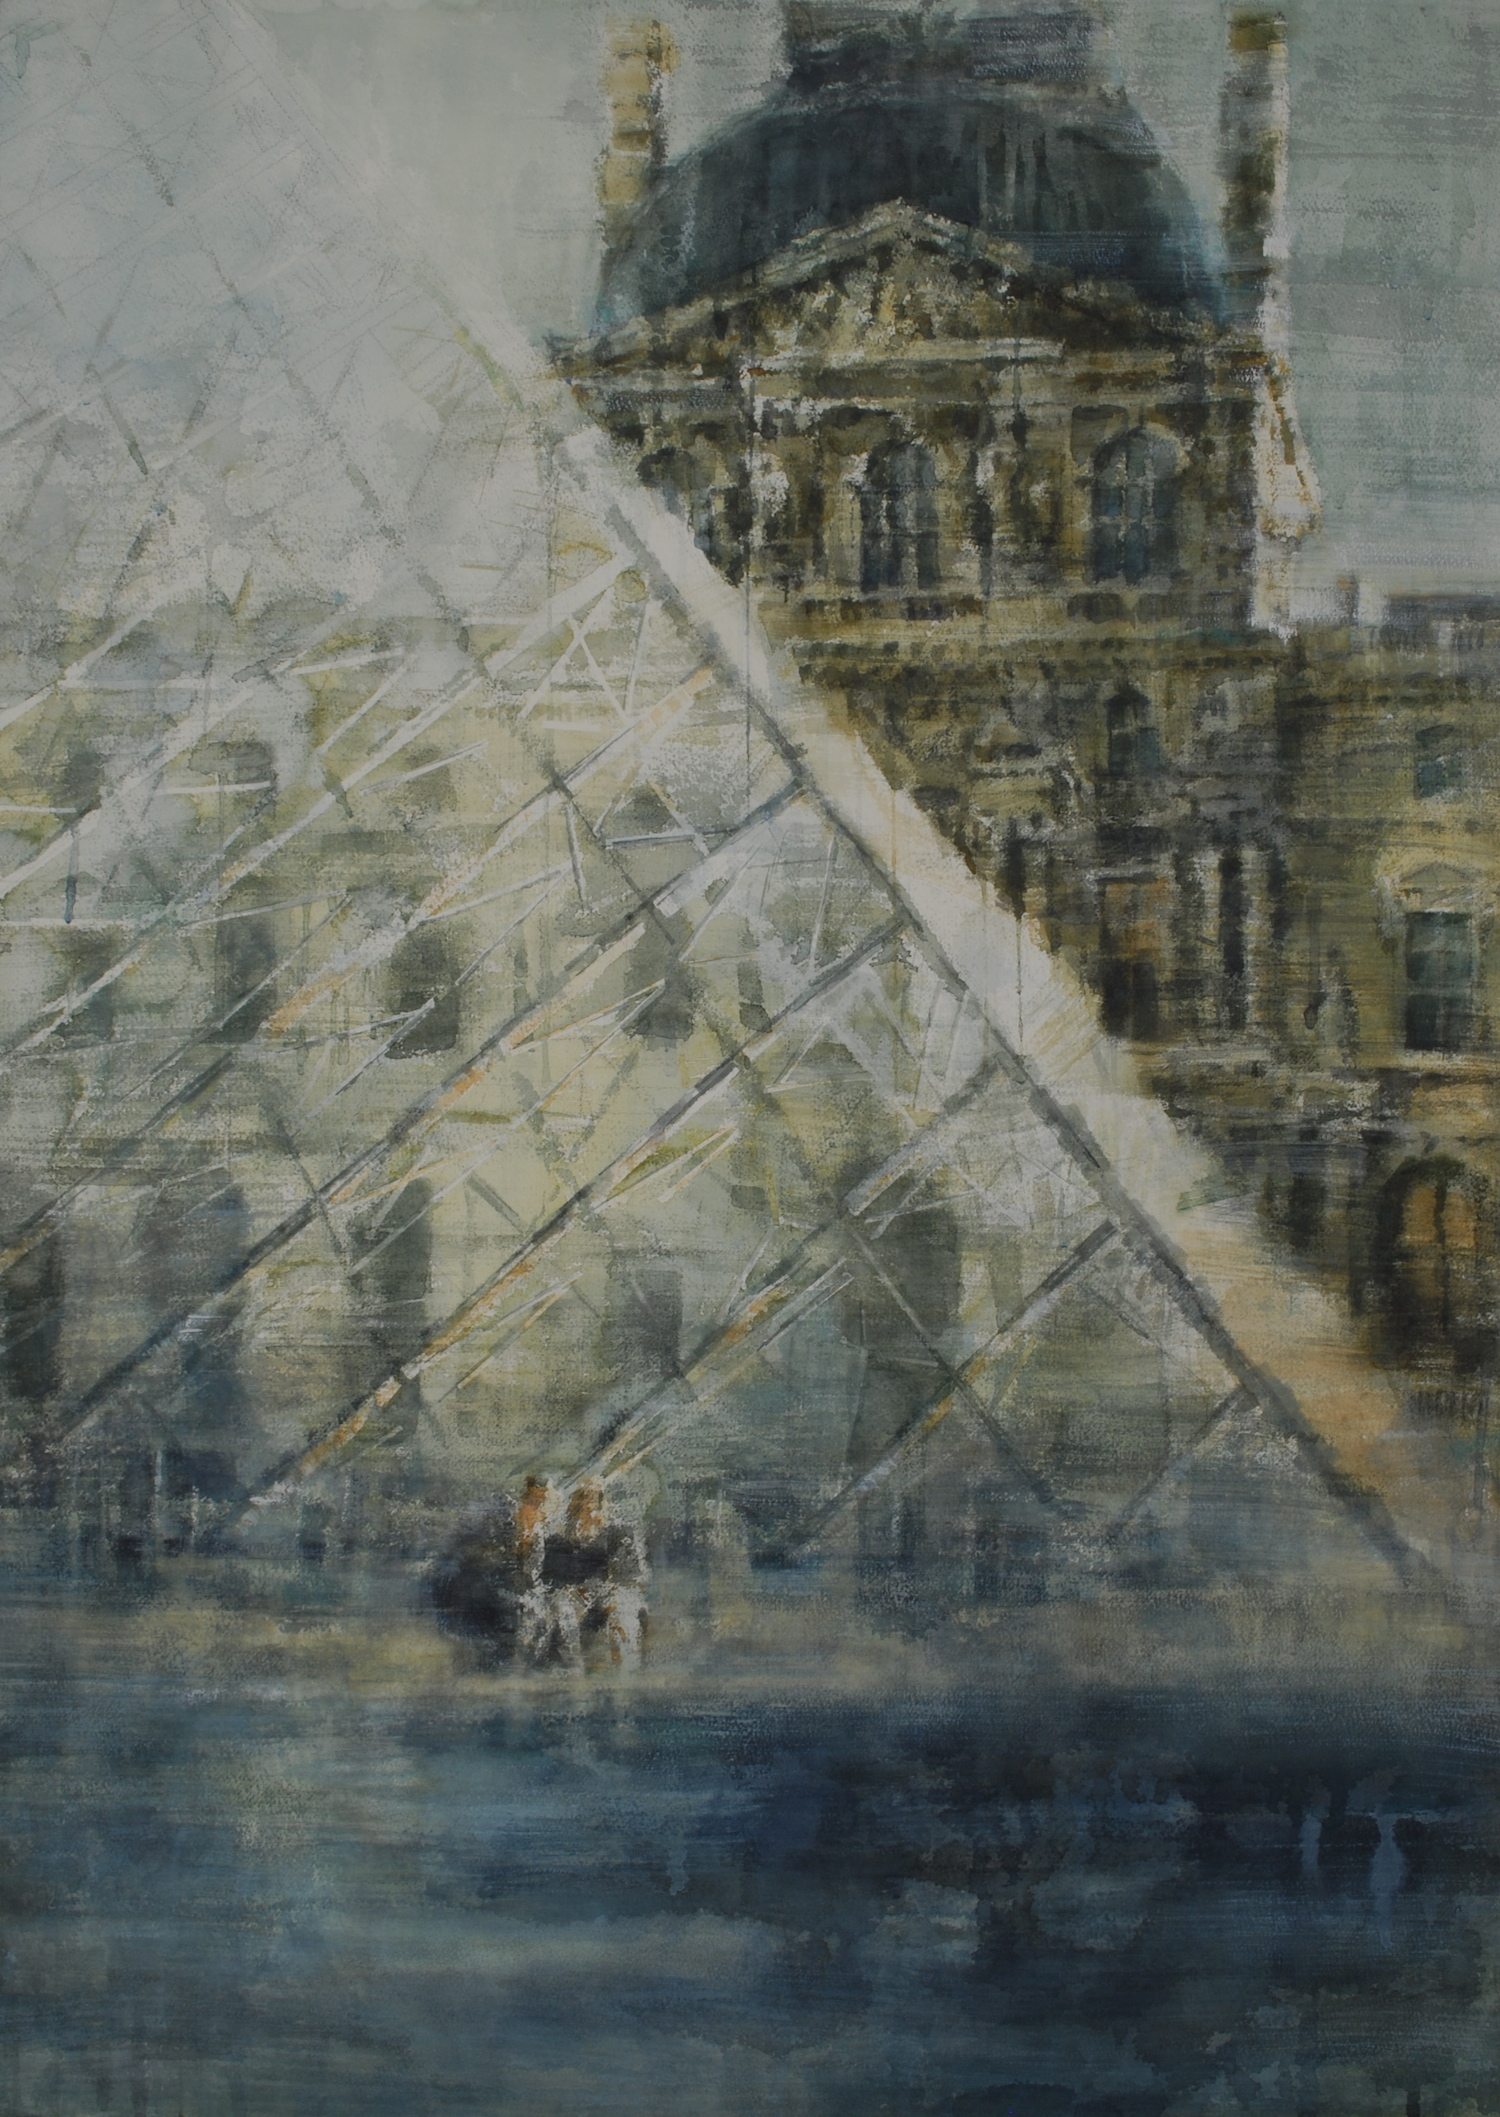 Pyramid in Paris, 29x41 inches